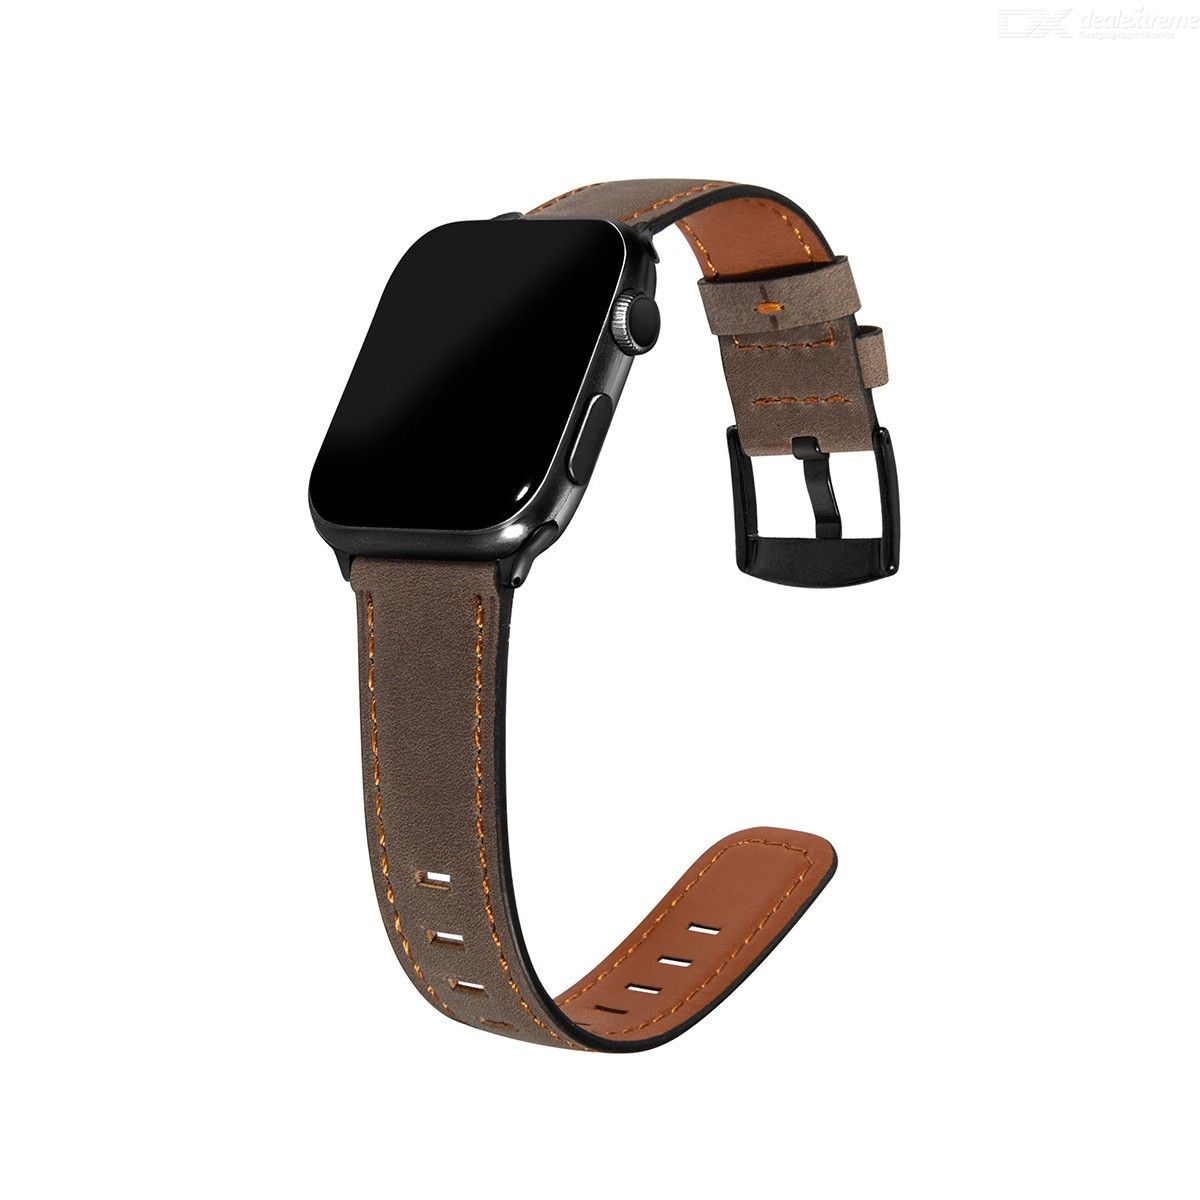 For Apple Watch Series 6/5/4/SE 44mm Hat-Prince ENKAY 2 in 1 Retro Style PU Leather Watch Band + 3D Full Screen PET Curved Hot B